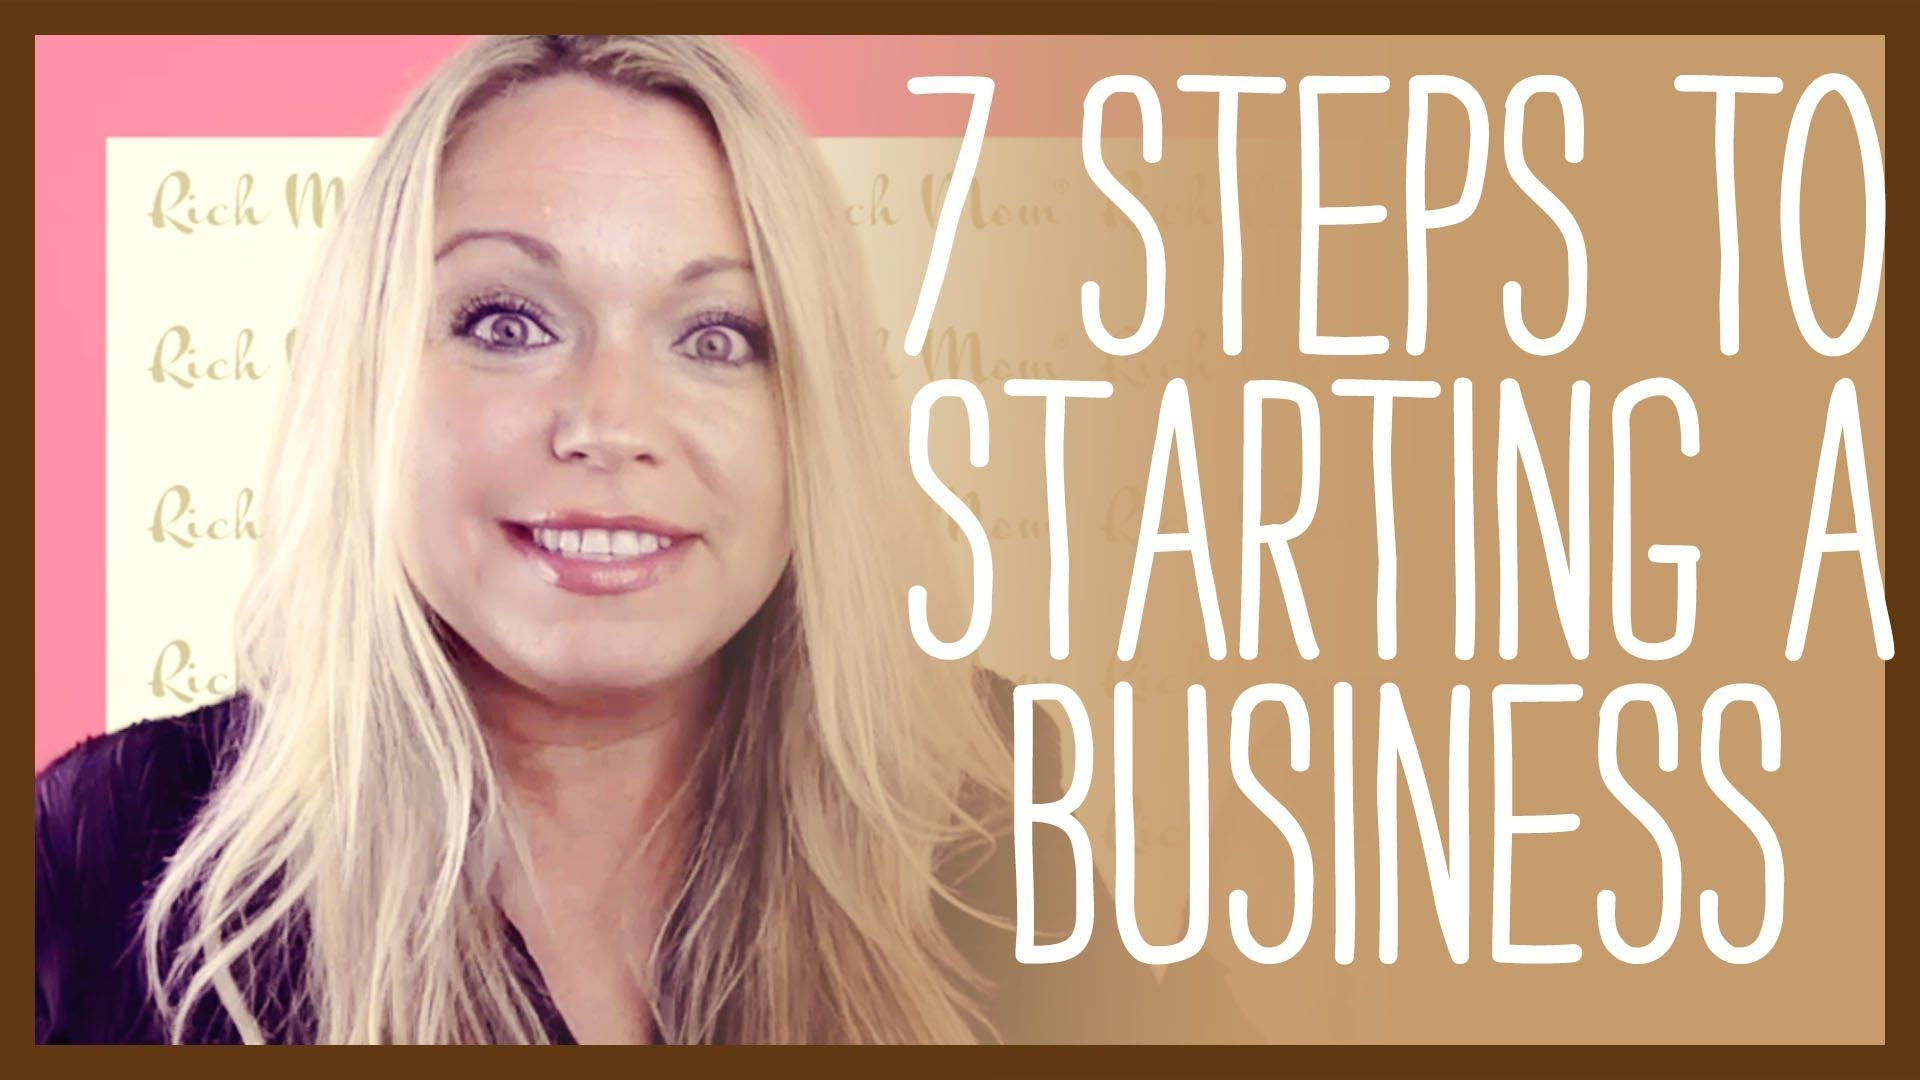 7 Simple Steps to Starting the Business of your Dreams